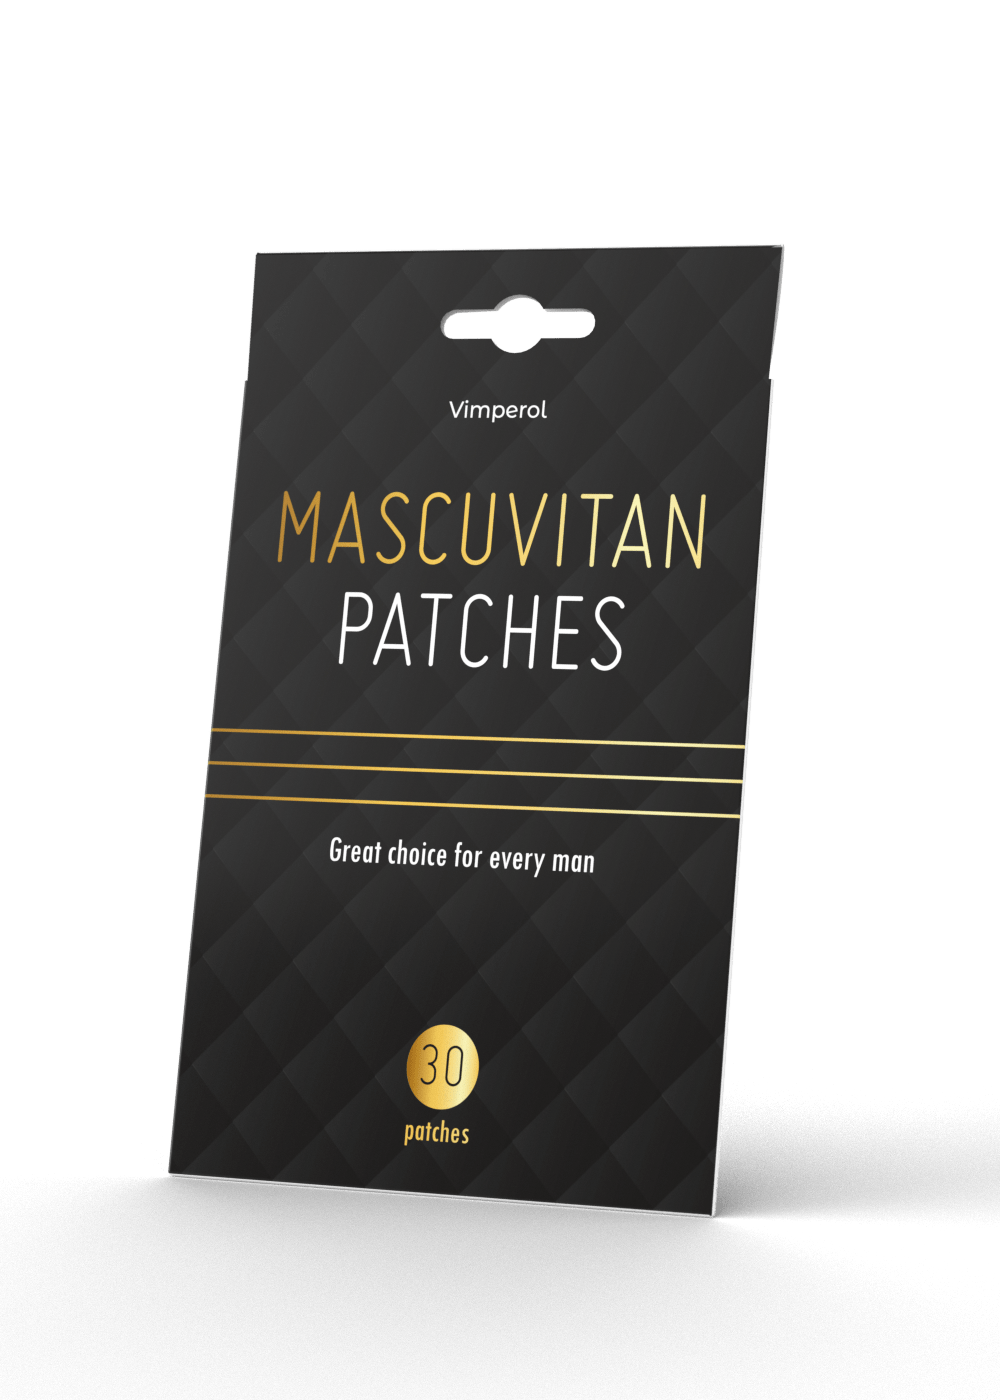 Mascuvitan Patches